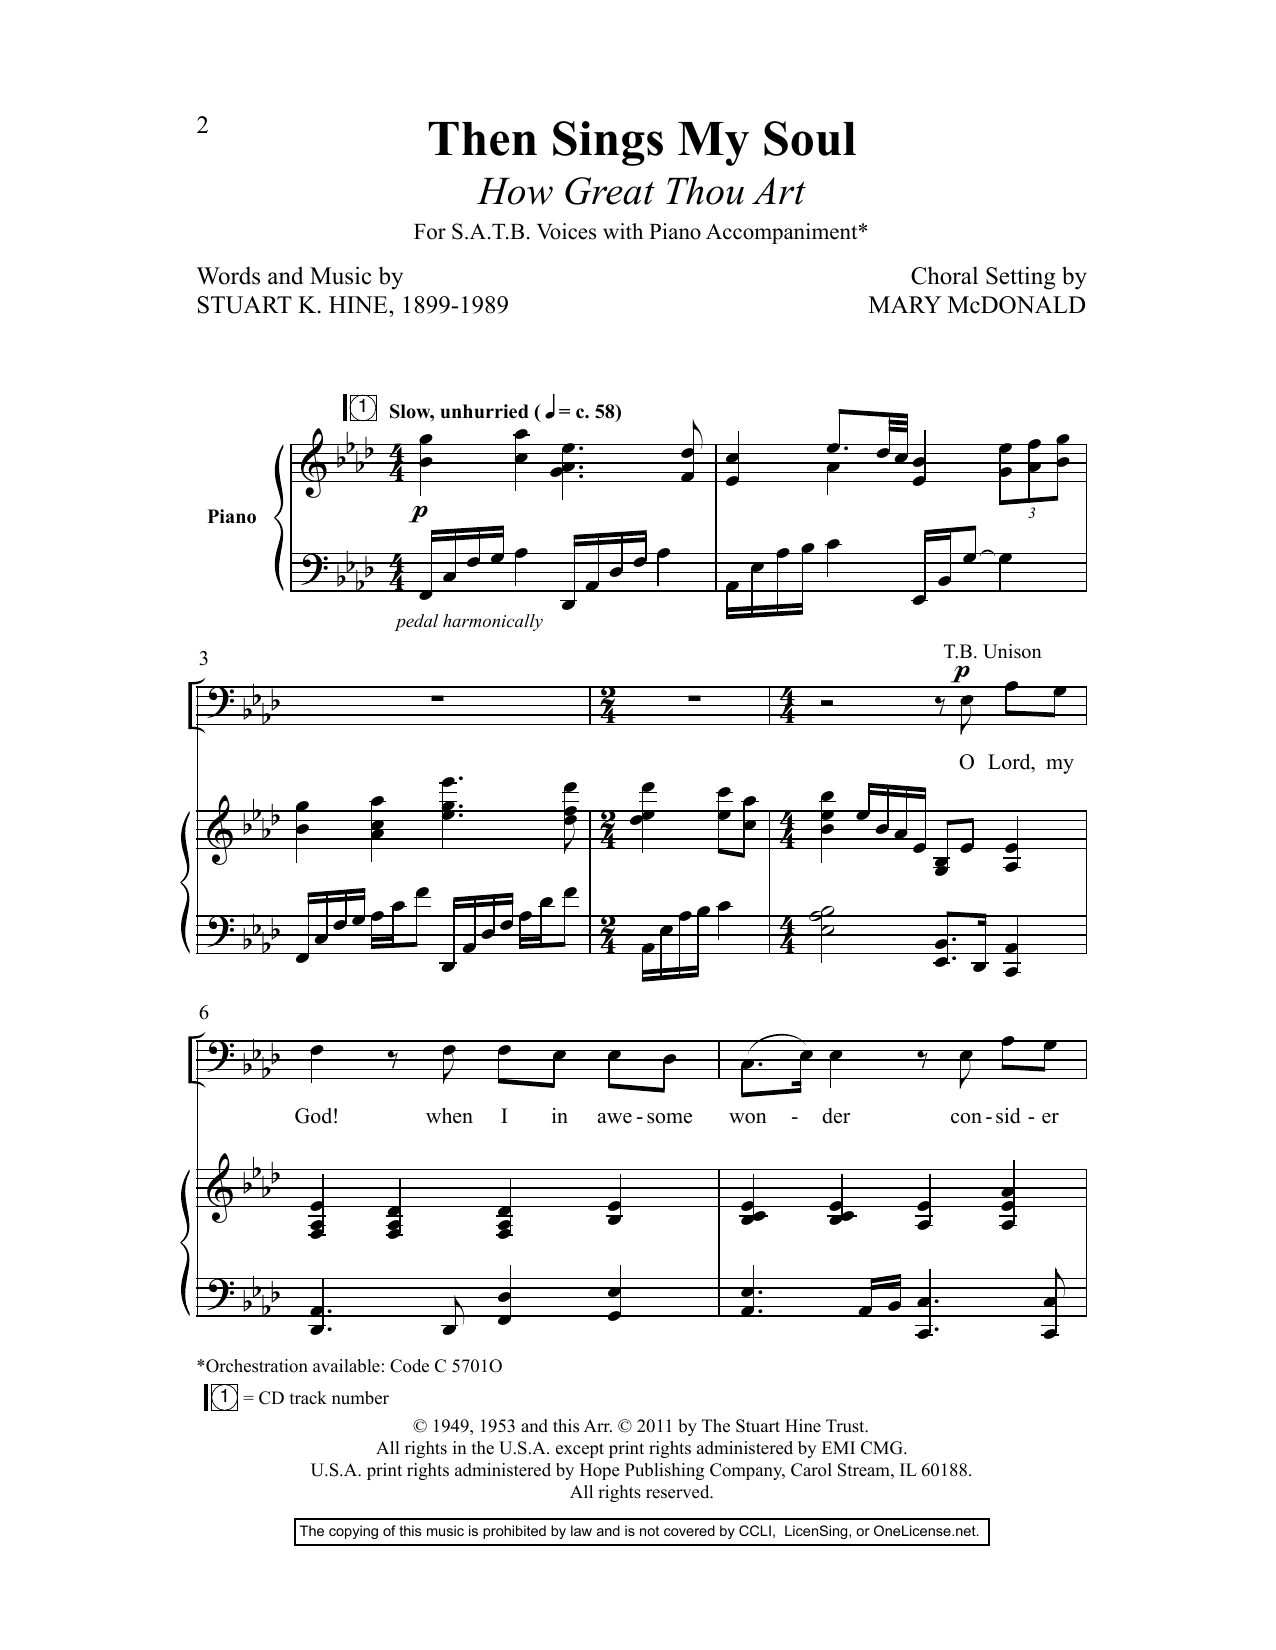 Stuart K. Hine Then Sings My Soul (How Great Thou Art) (arr. Mary McDonald) sheet music preview music notes and score for SAB Choir including 10 page(s)